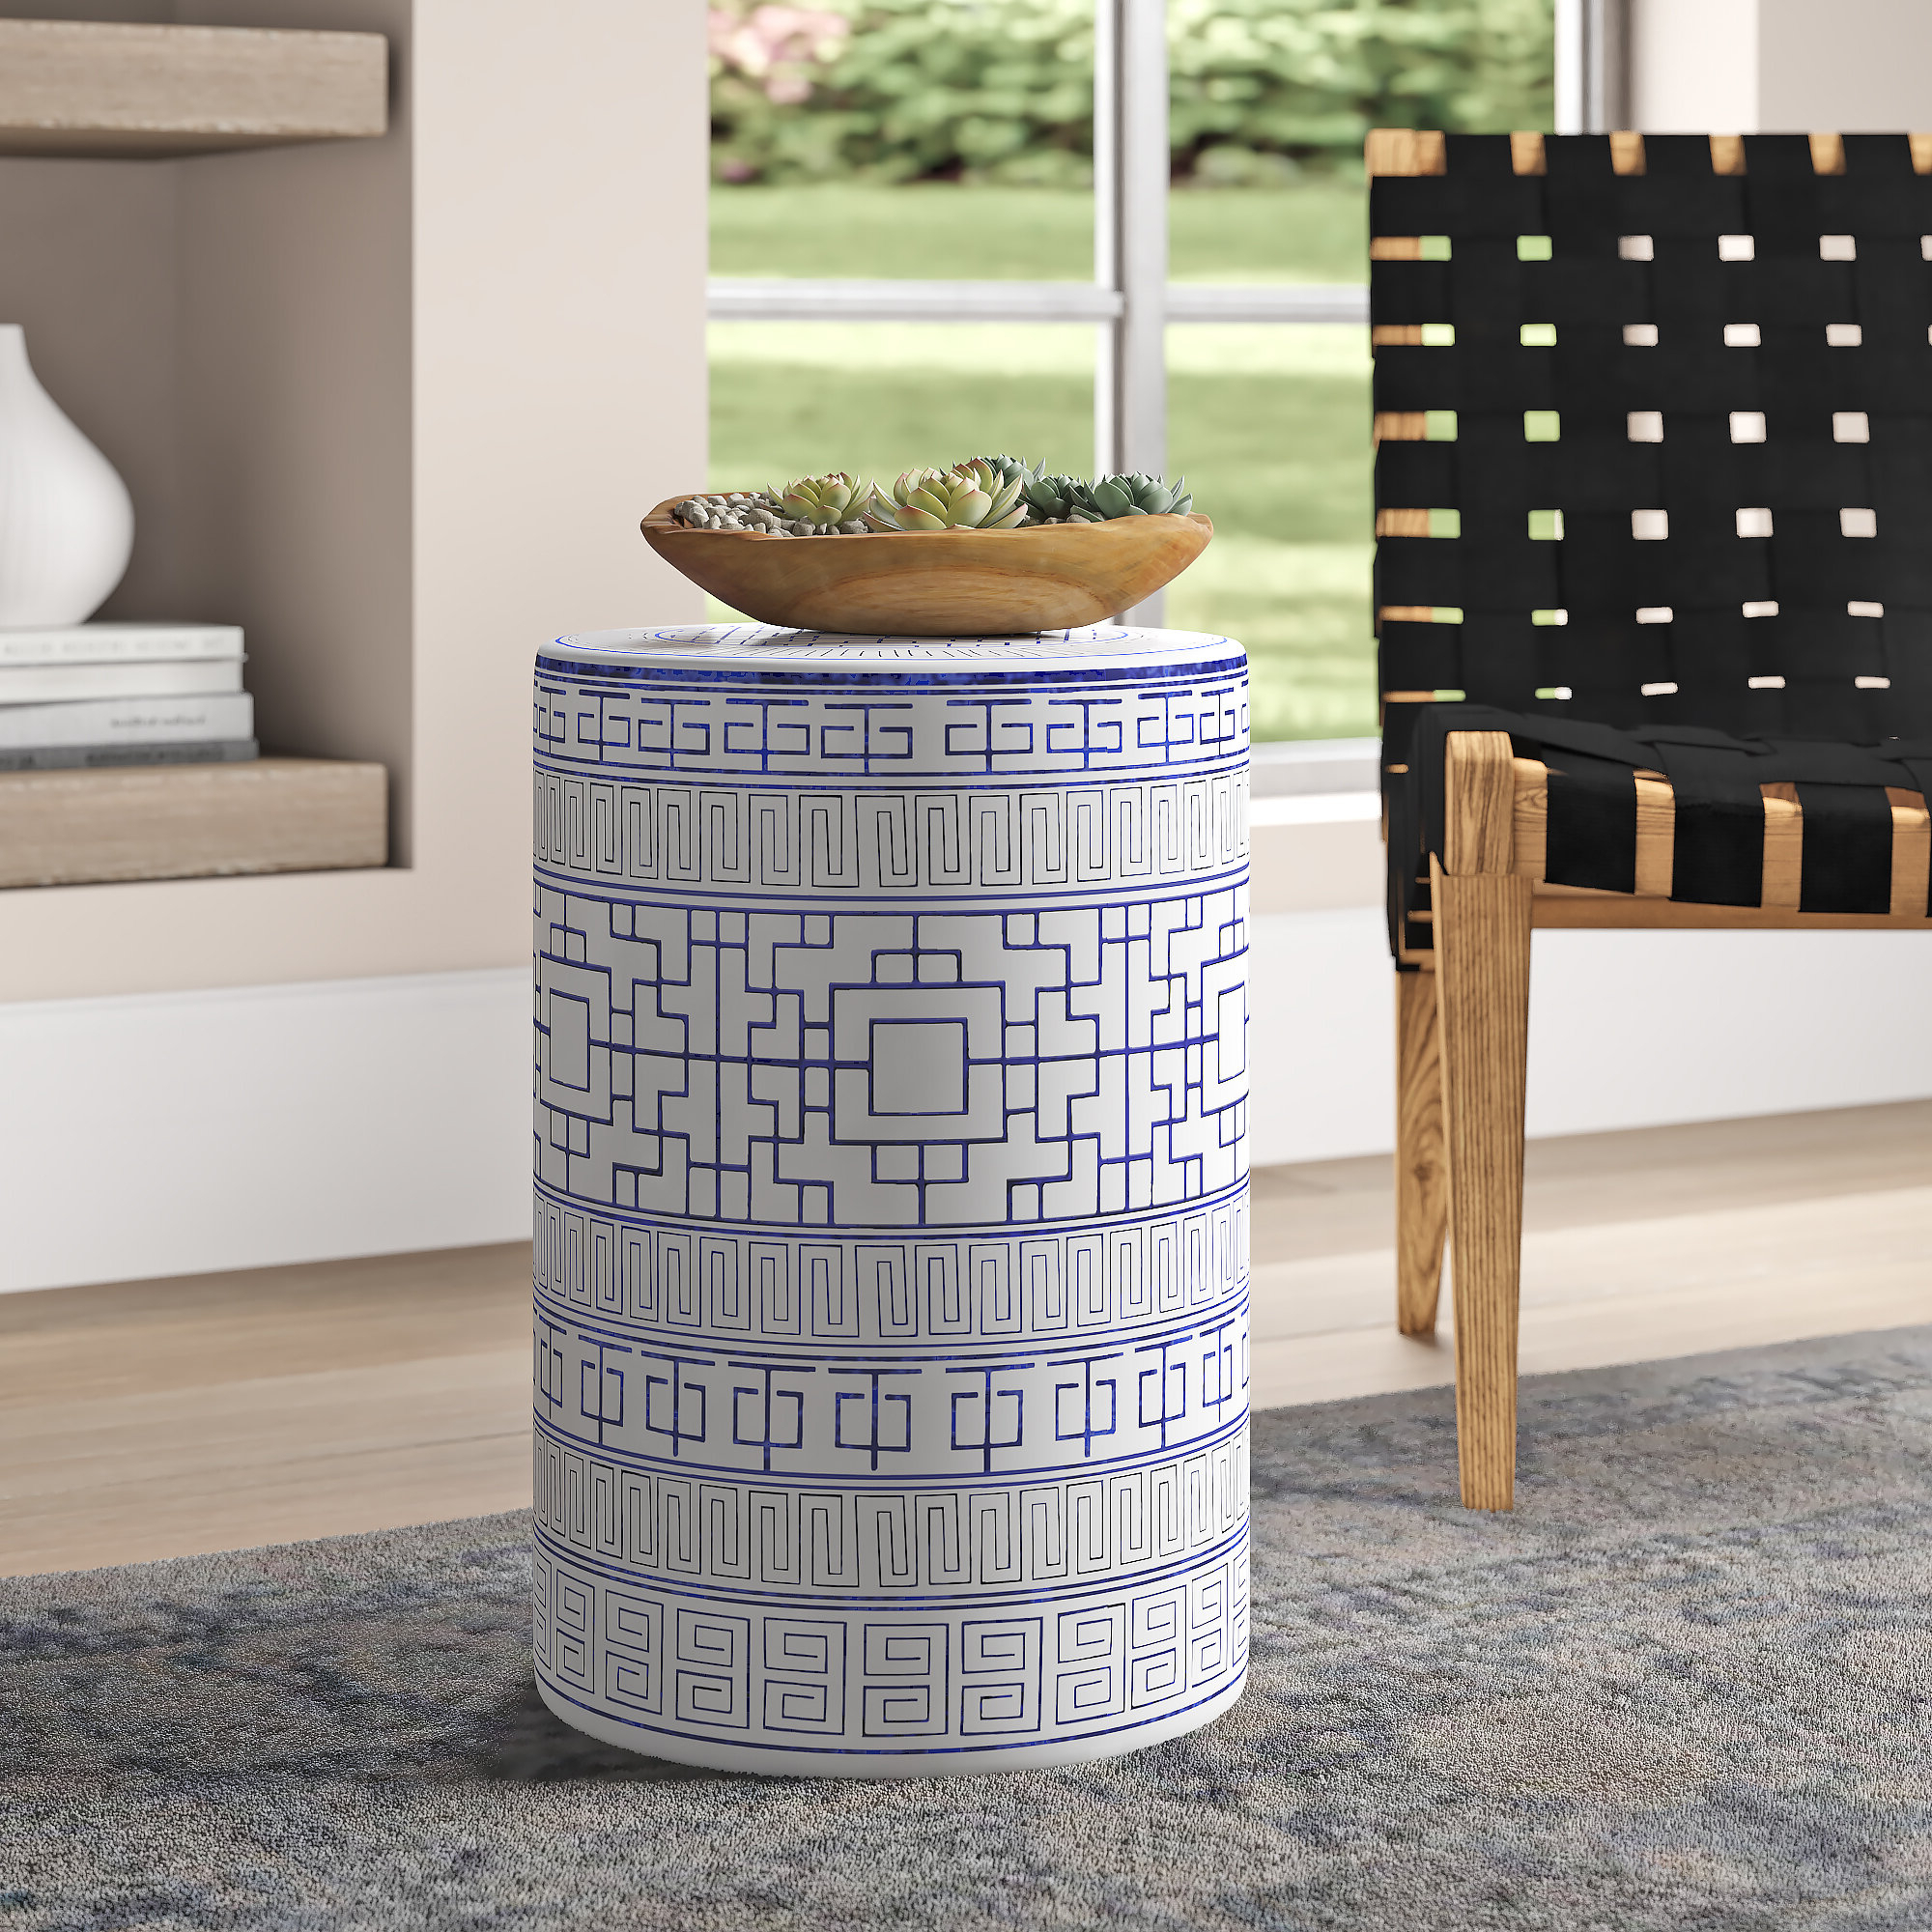 2020 Kelston Ceramic Garden Stools With Regard To Anakin Ceramic Garden Stool (View 11 of 30)